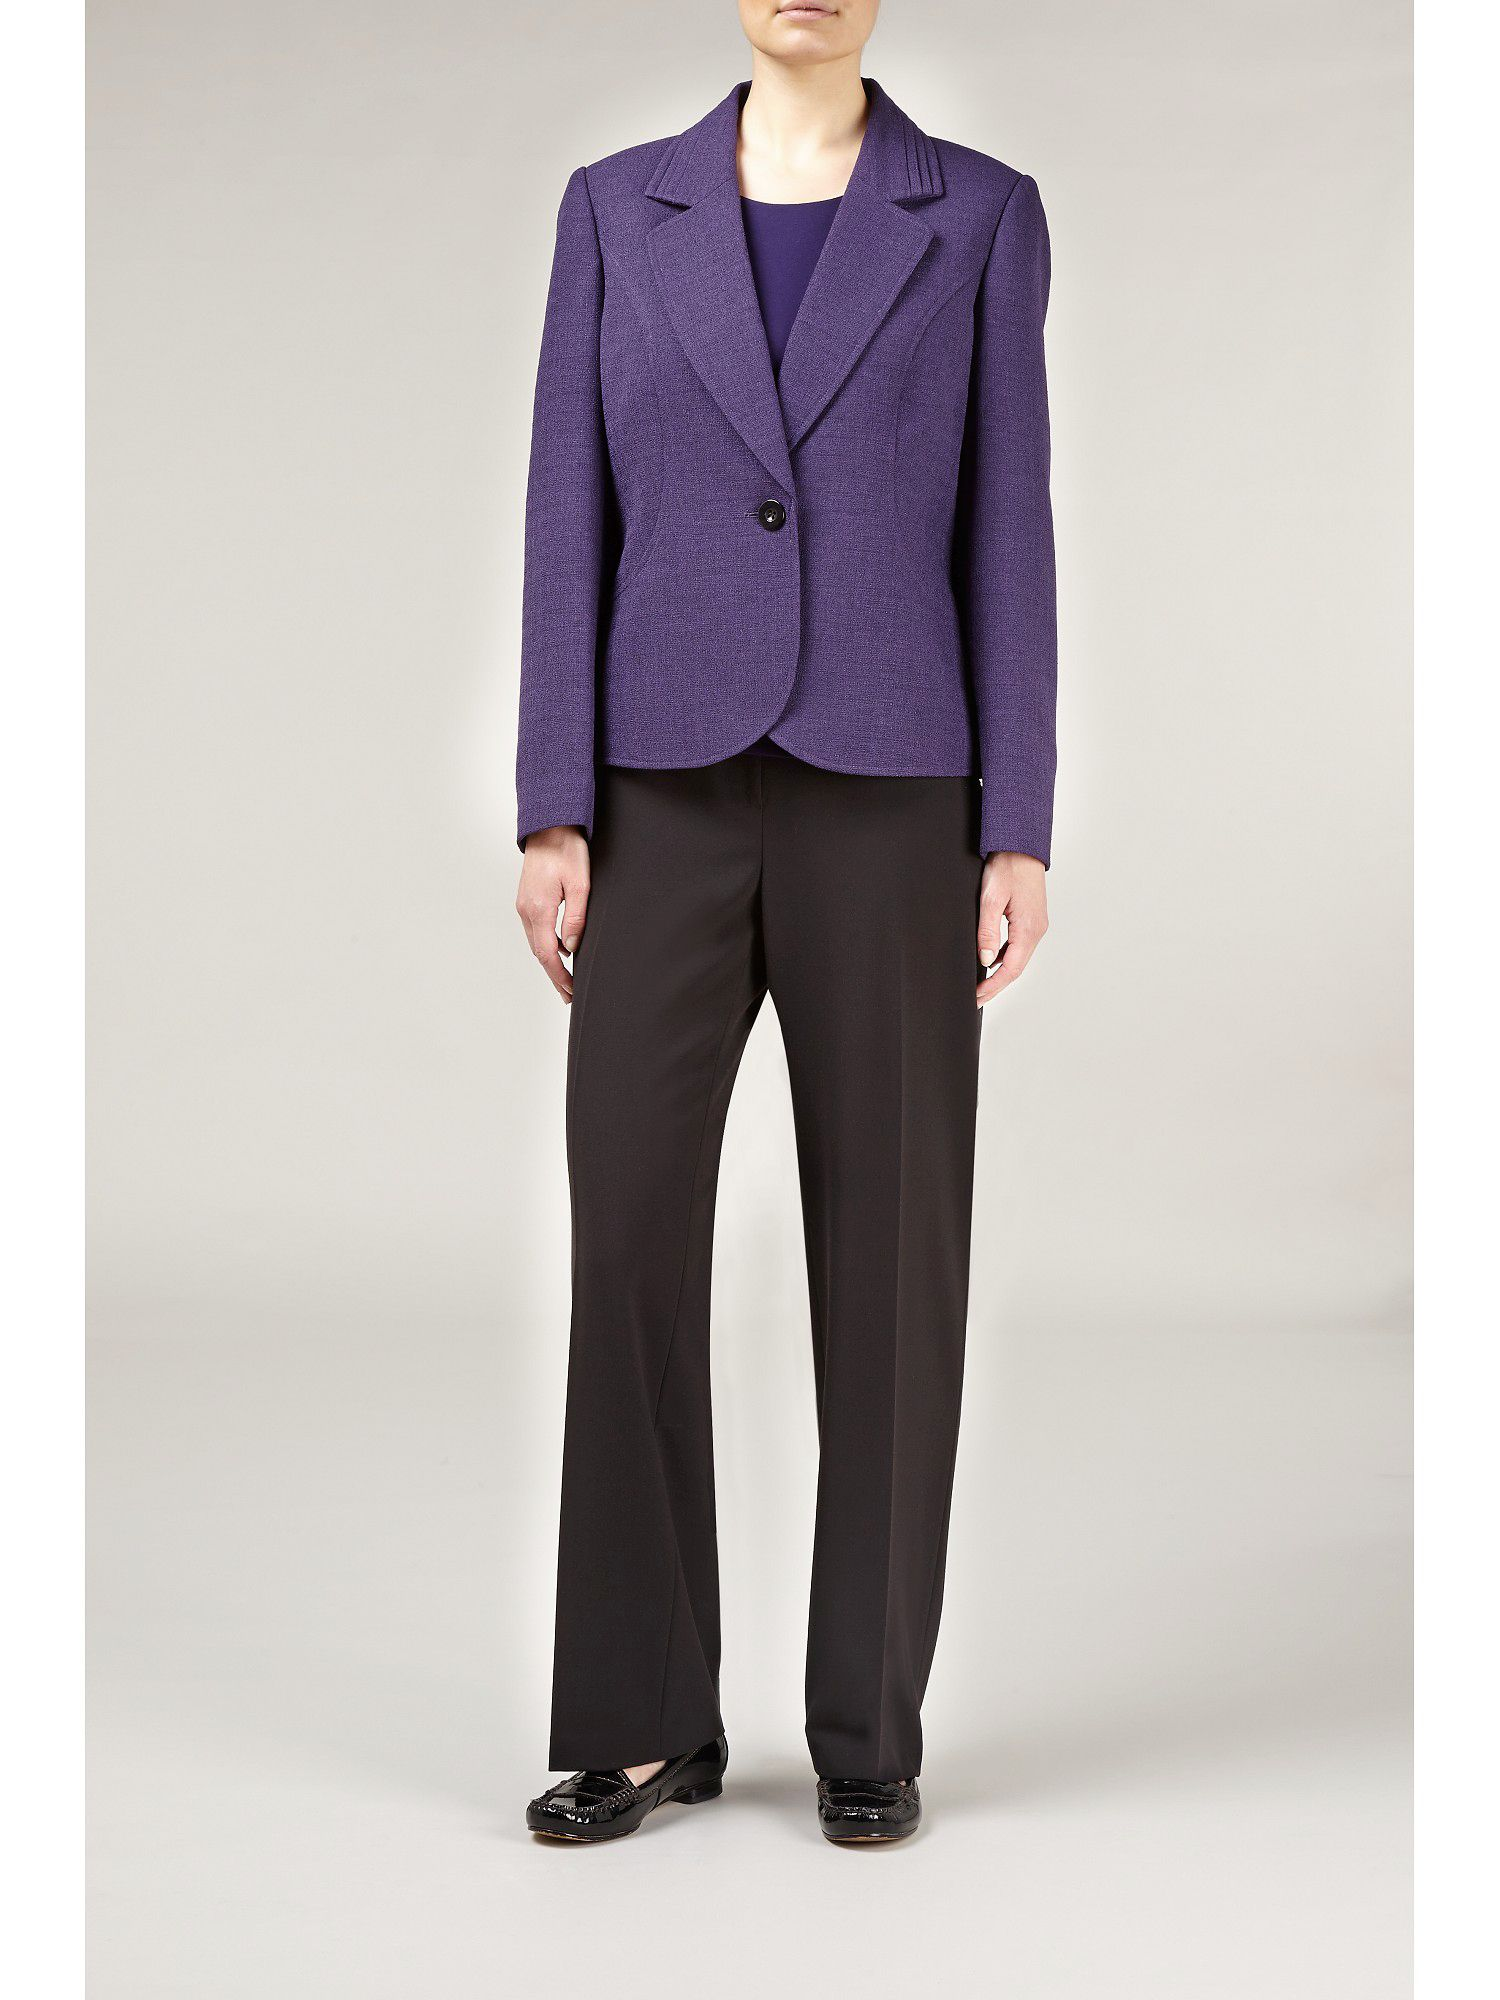 Damson tailored jacket